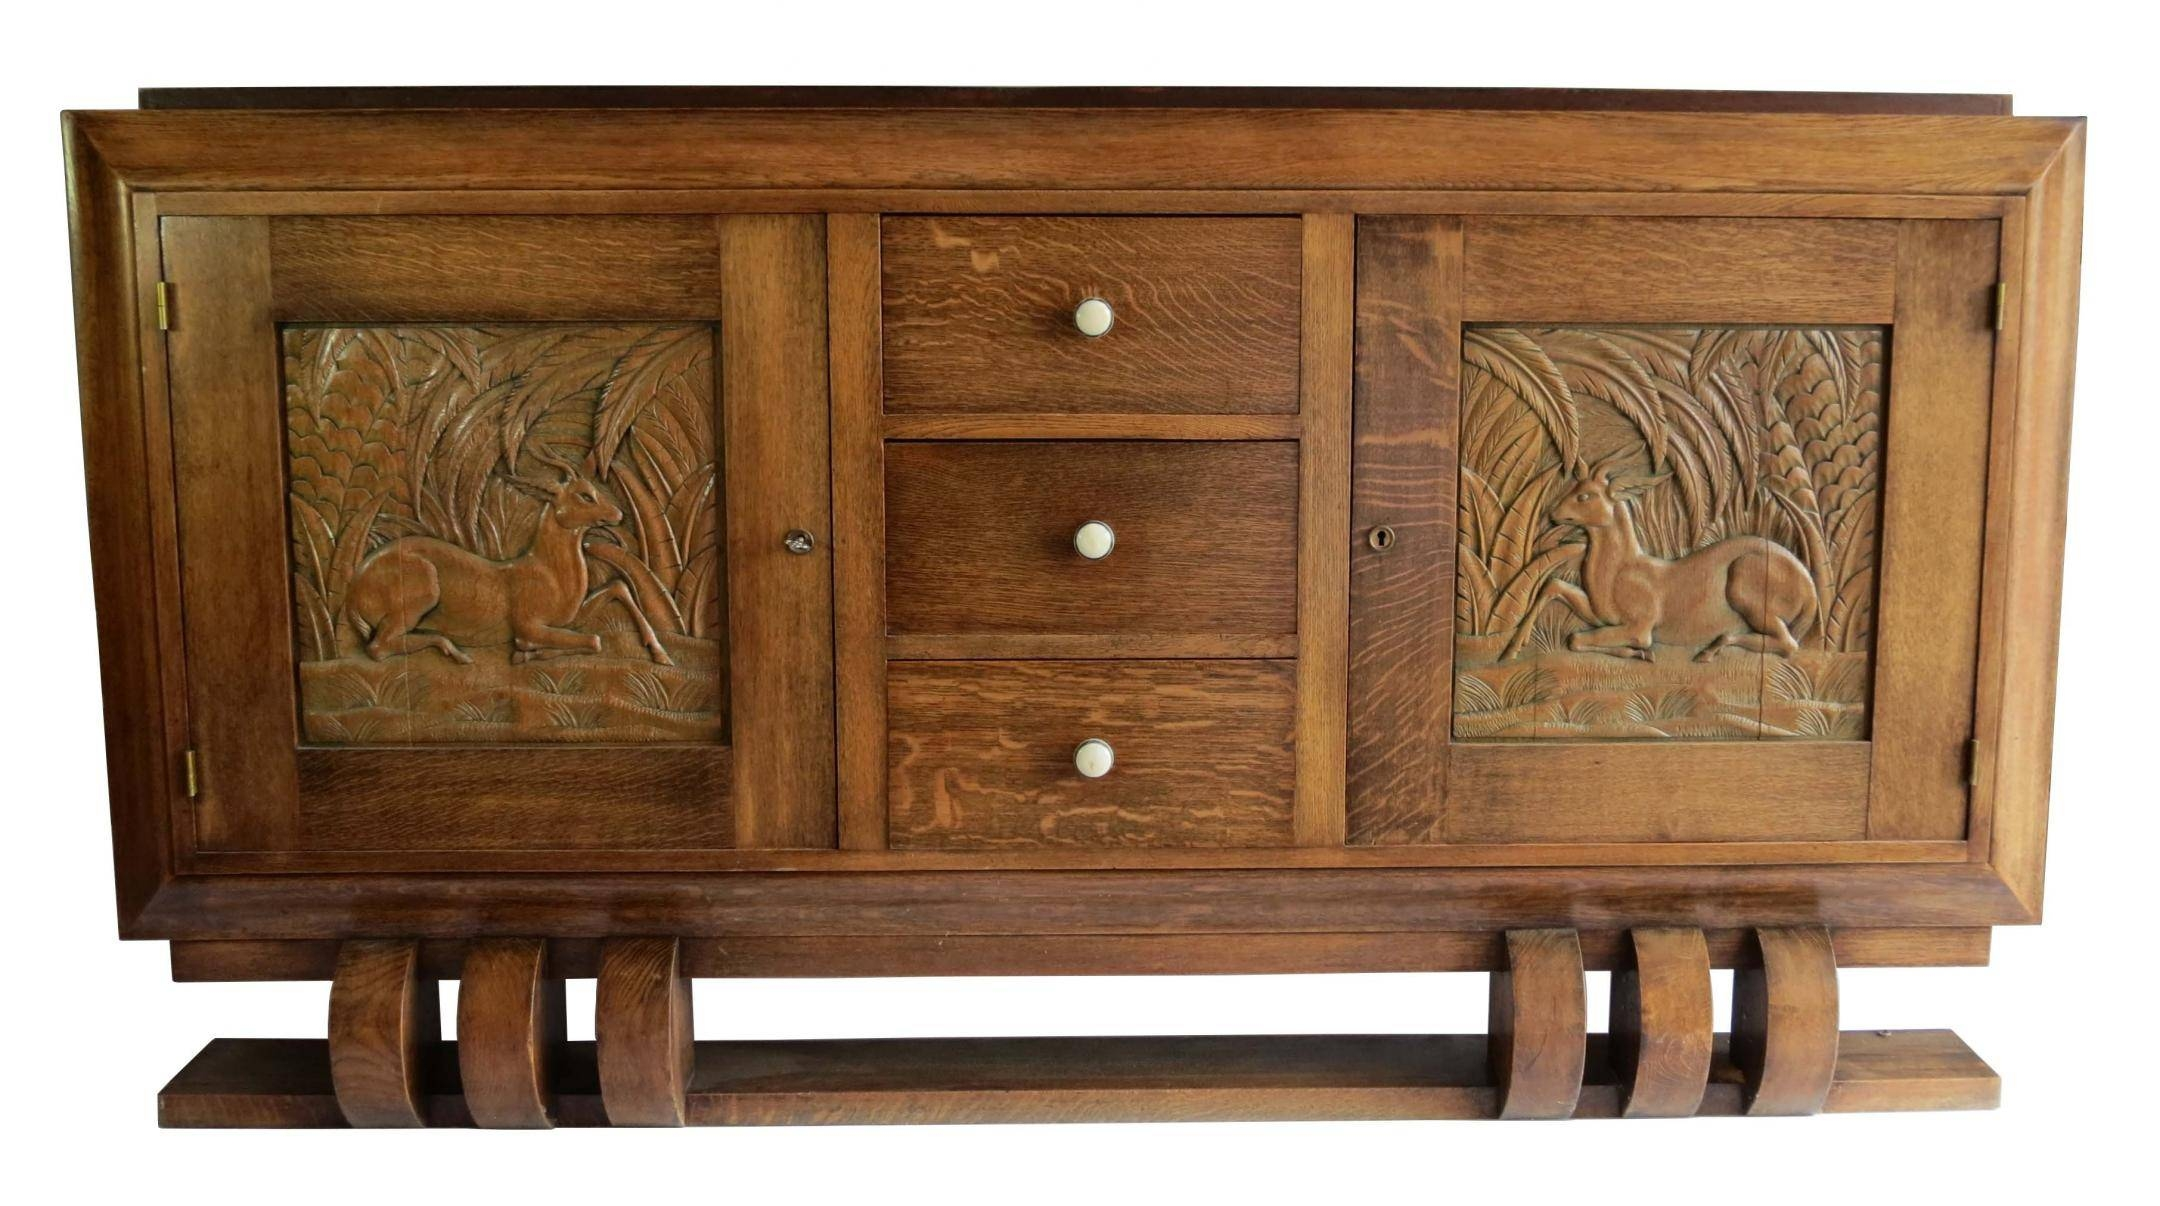 Dudouyt French Art Deco Sideboard With Carved Biches | Modernism intended for Art Deco Sideboards (Image 6 of 15)